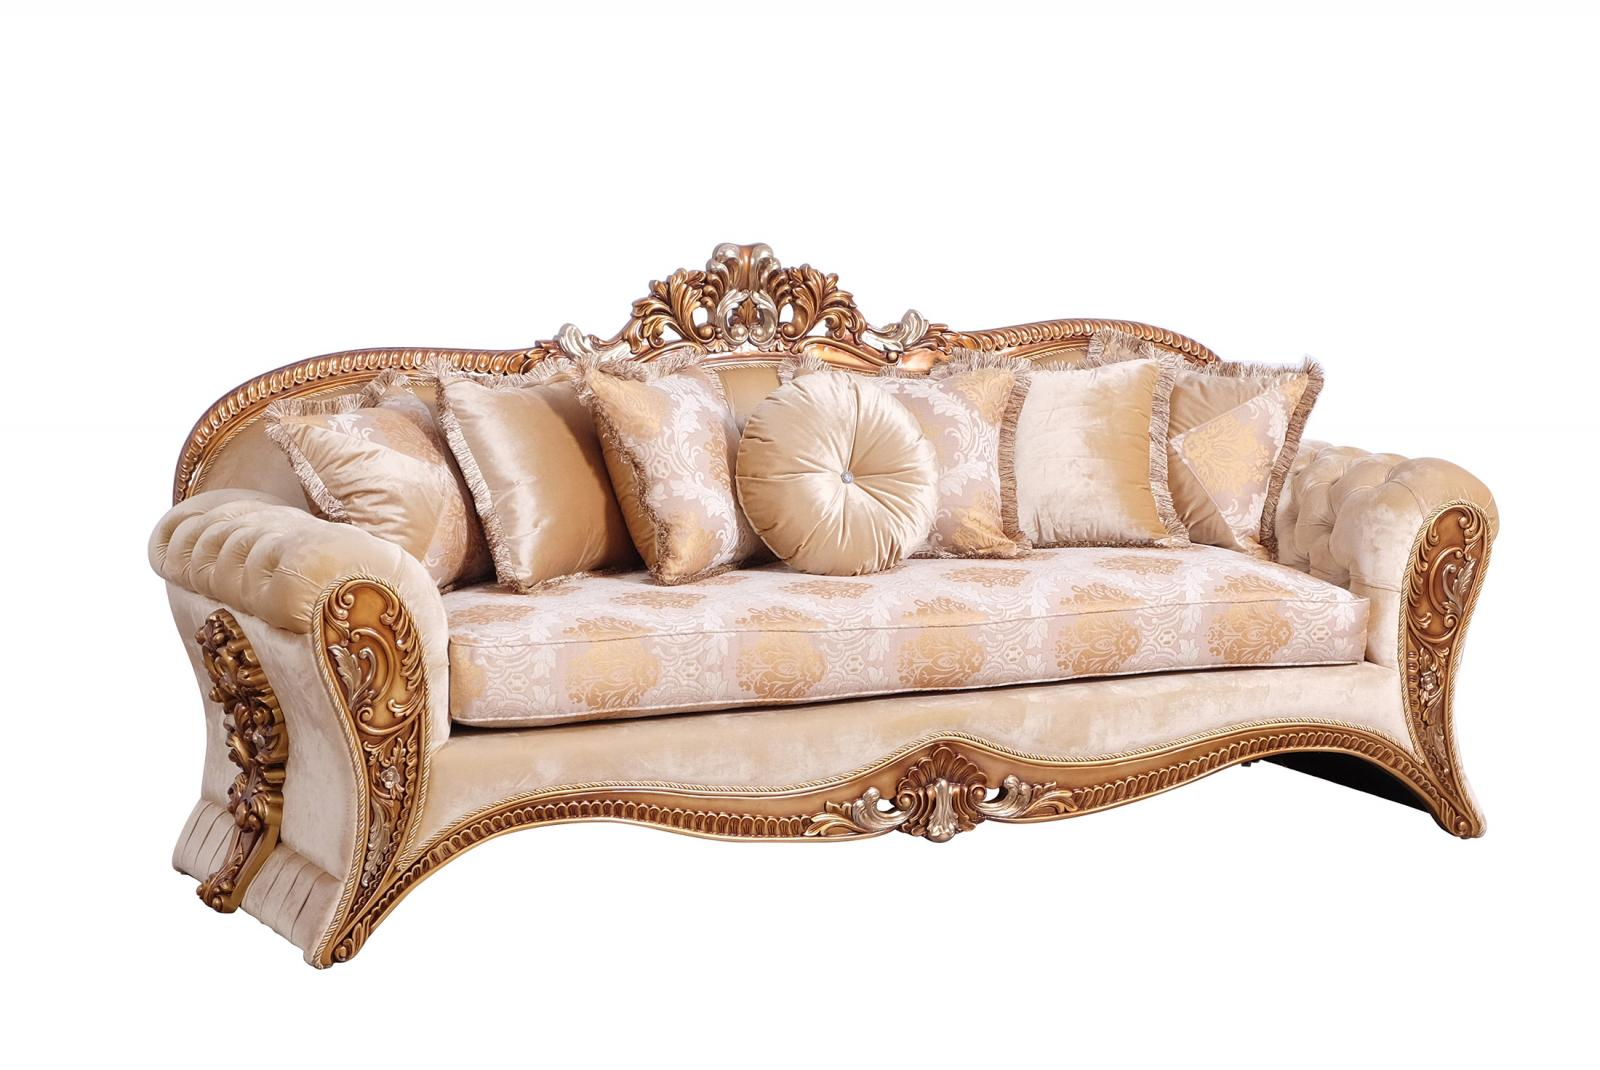 Classic  Traditional Gold Wood  Solid Hardwood and Fabric Sofa EUROPEAN FURNITURE 42038-S